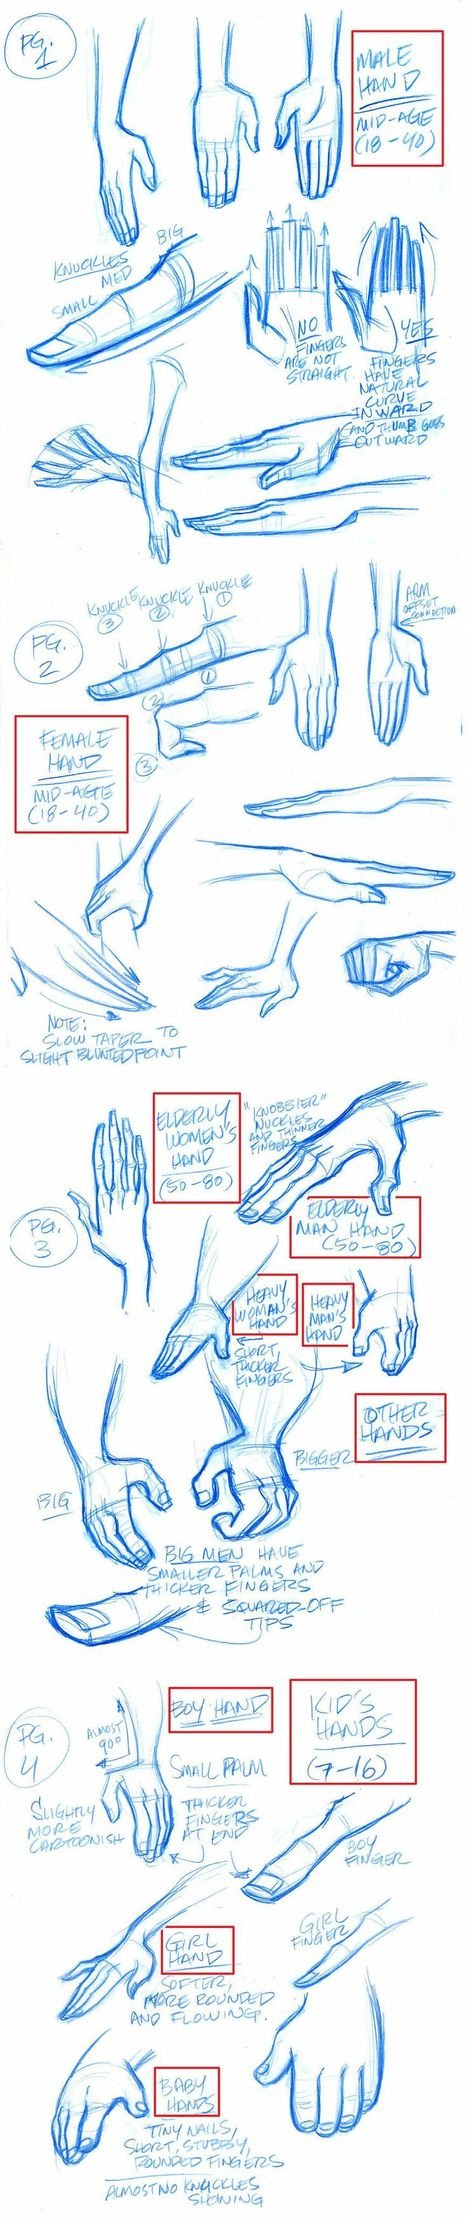 how to draw hands in drawing references and resources